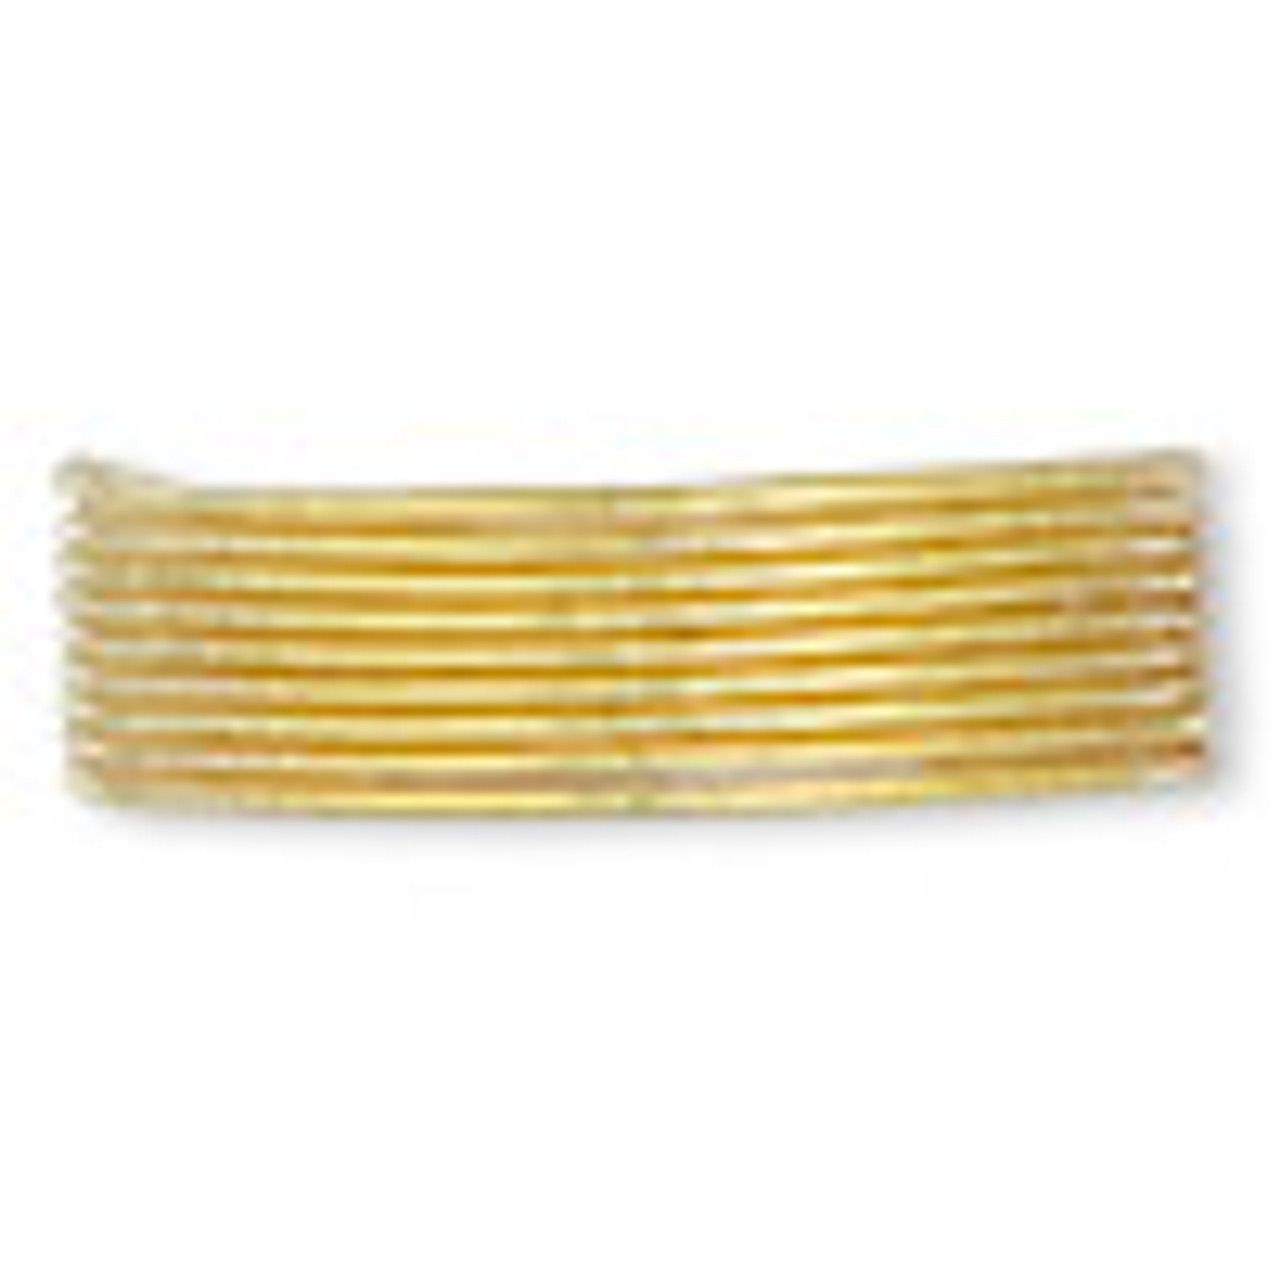 French wire, gold-plated copper, light, 0.85mm. Sold per 27- to 30-inch strand.